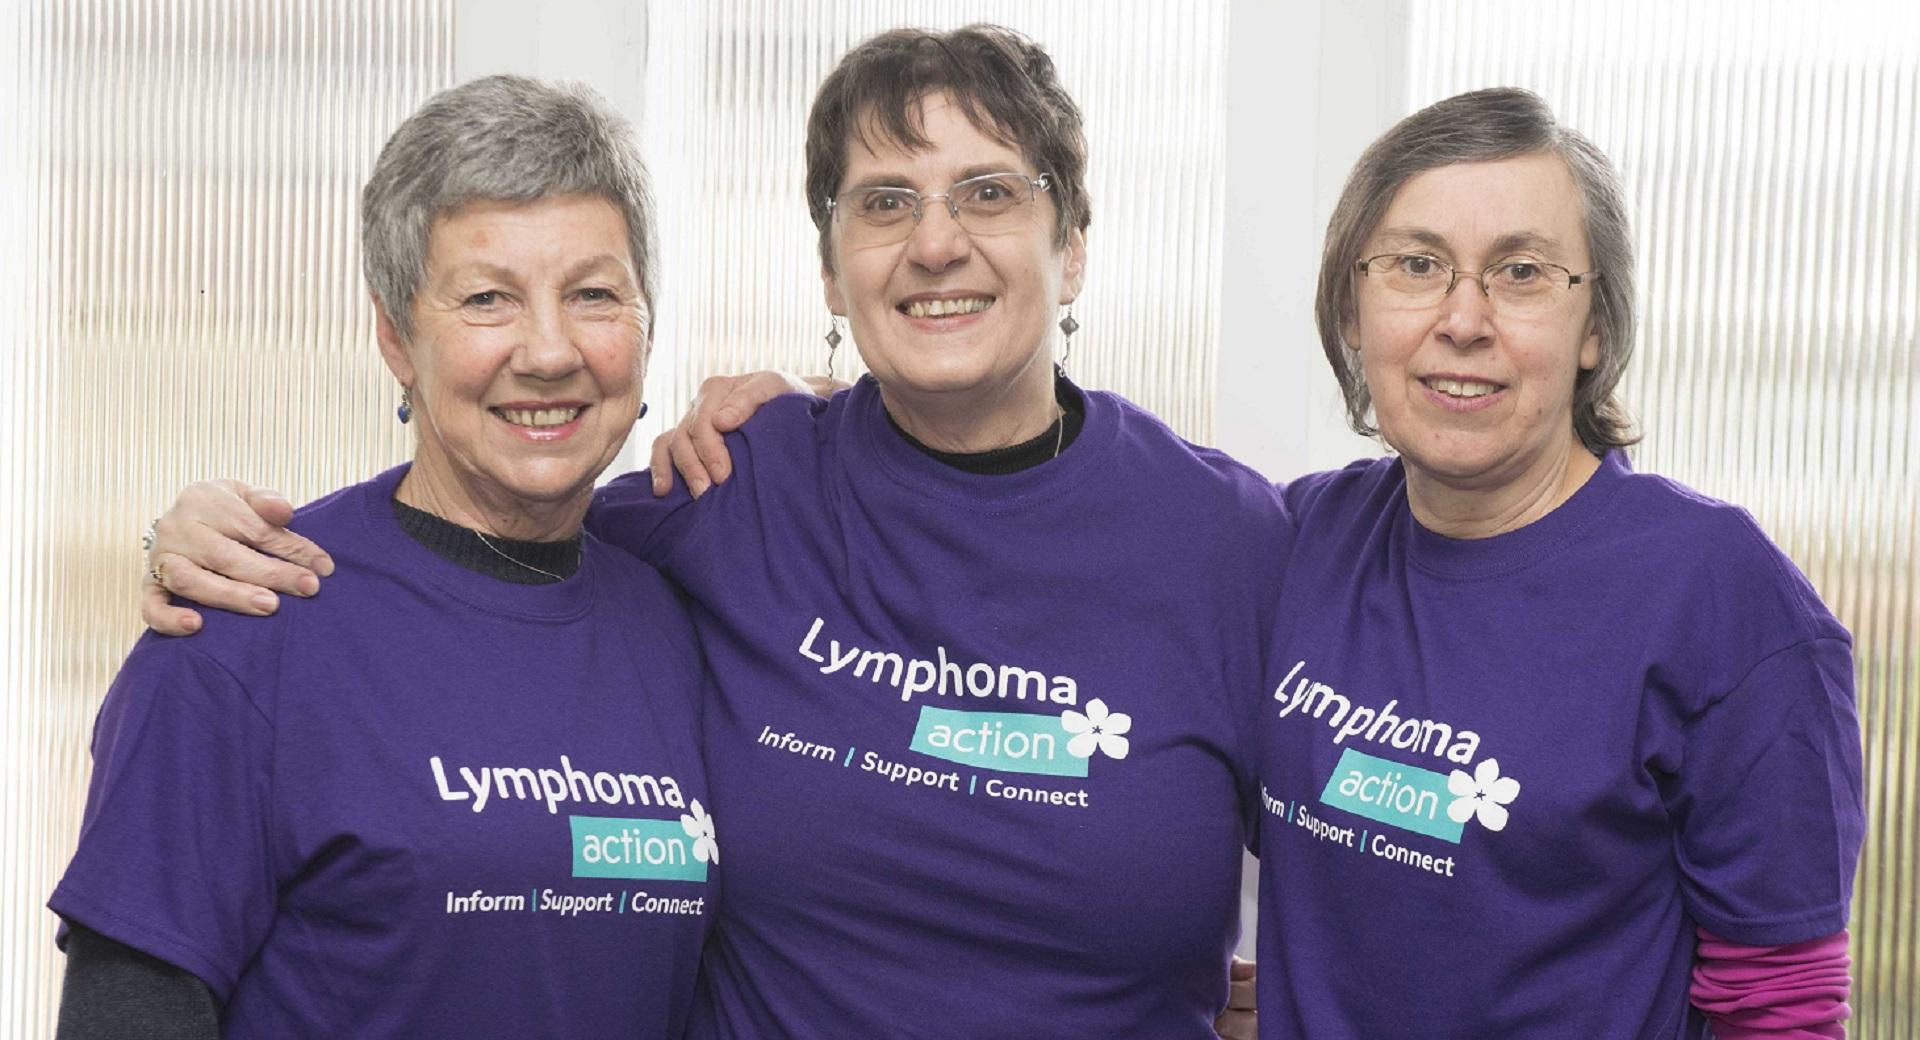 Three women Lymphoma Action t-shirts Essex Support Group